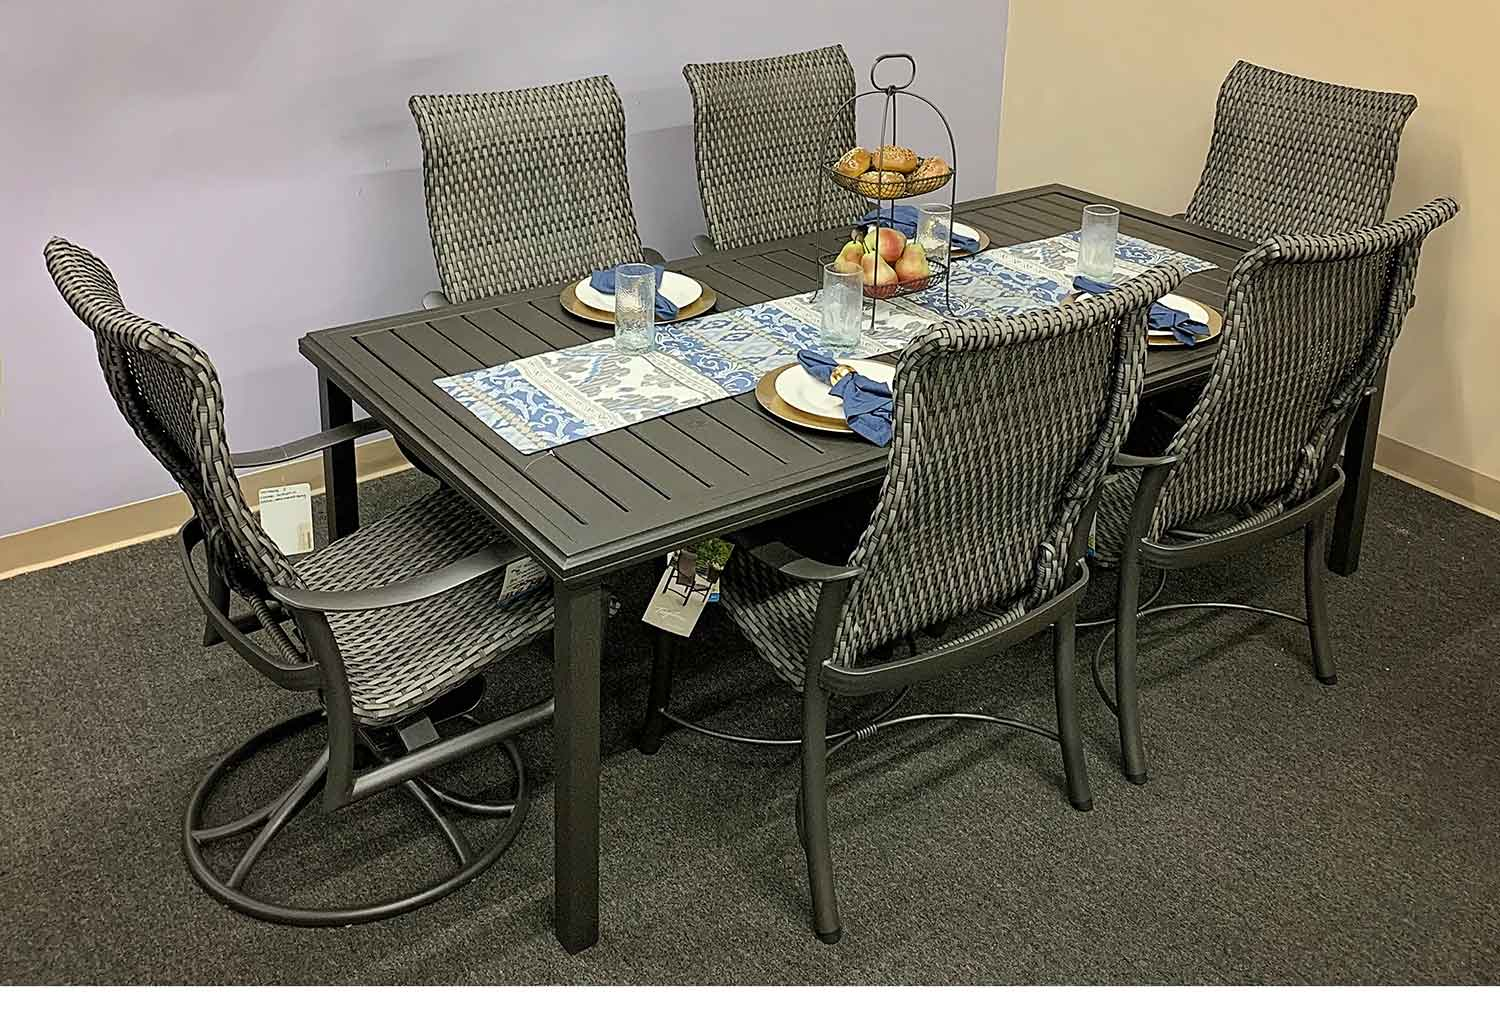 Stock Montreux Woven Patio Dining Set in Knoxville TN